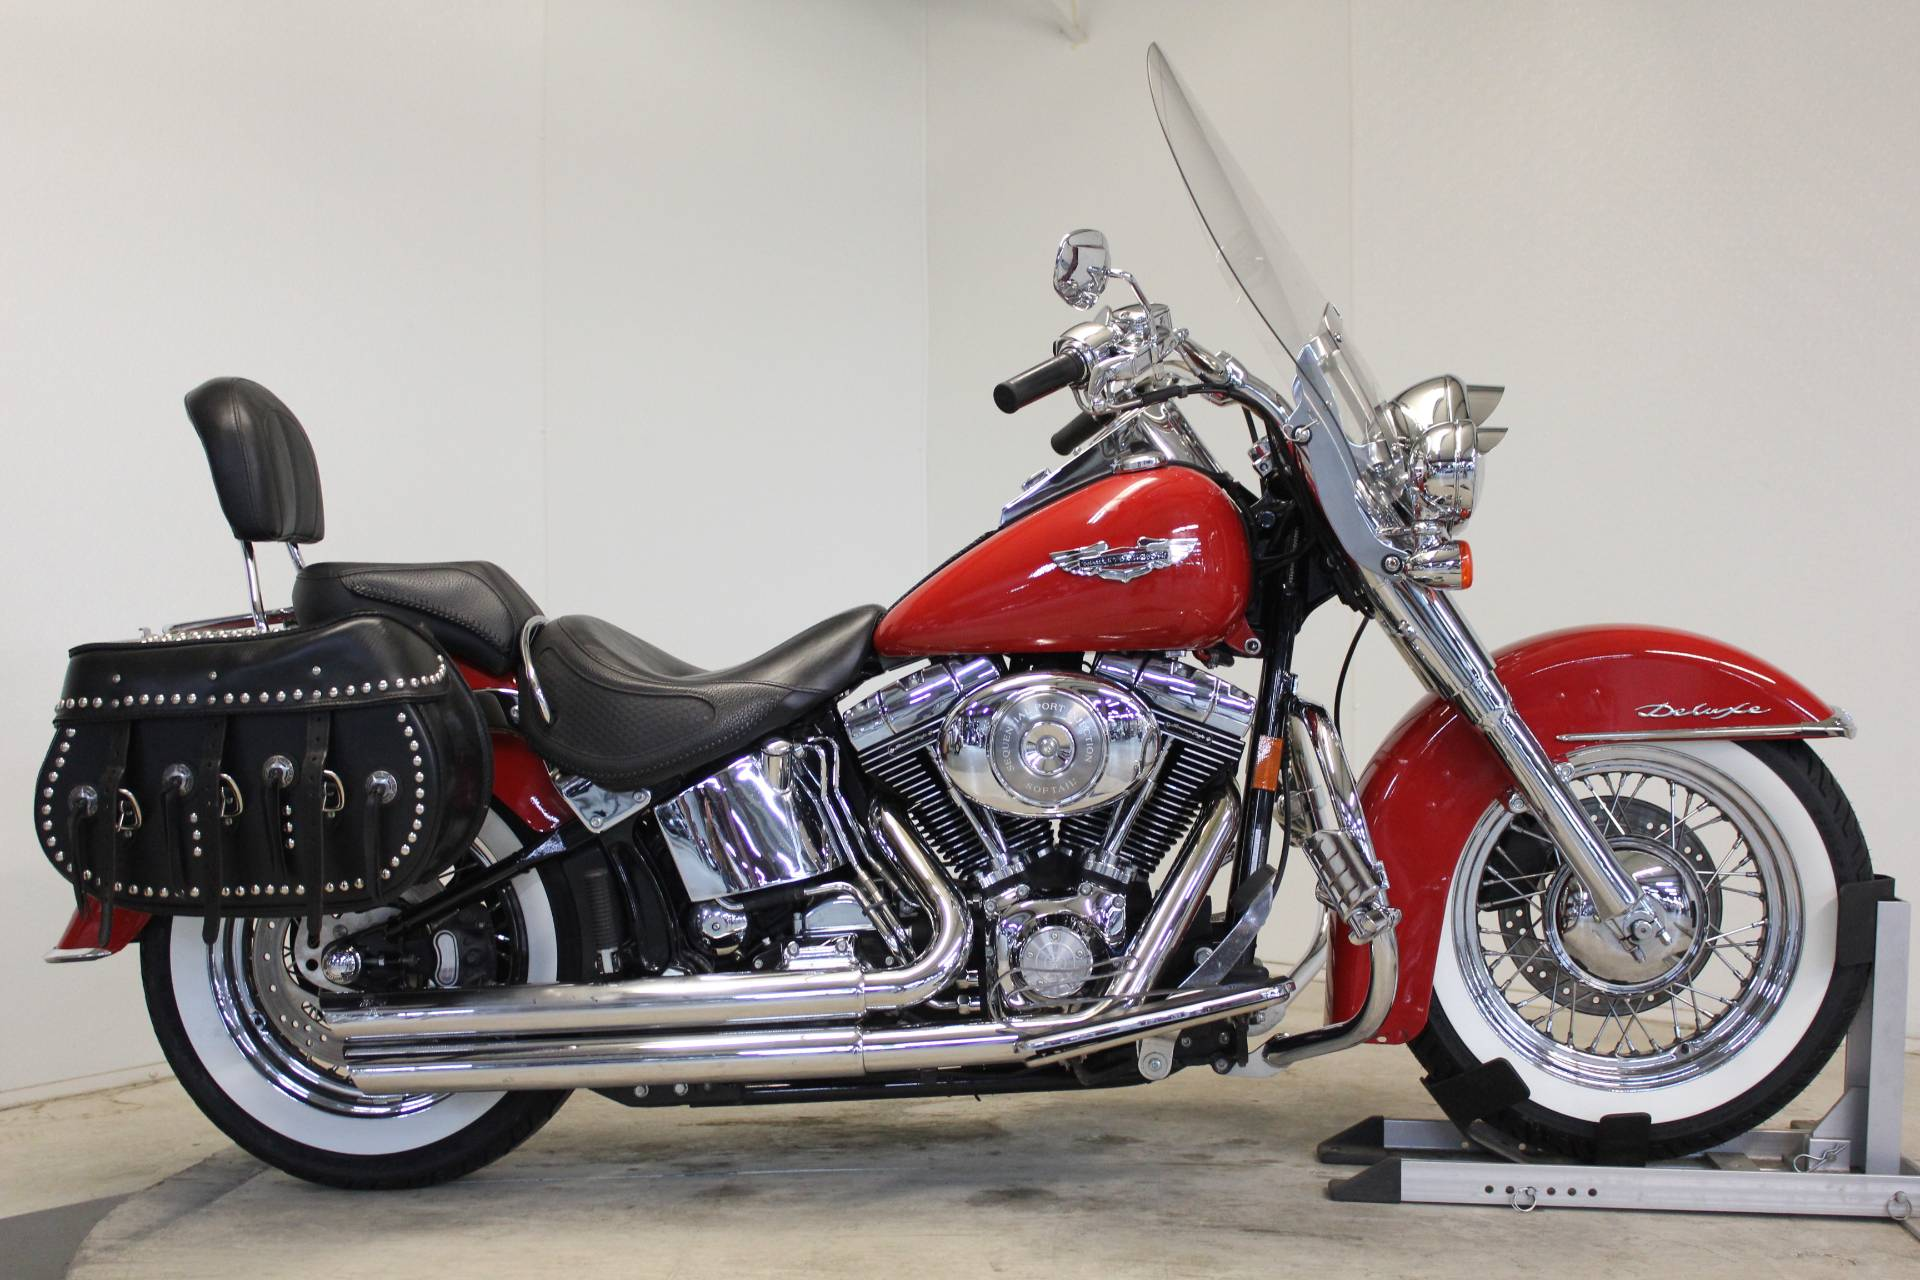 Harley Davidson Softail Deluxe >> 2006 Harley Davidson Softail Deluxe In Pittsfield Massachusetts